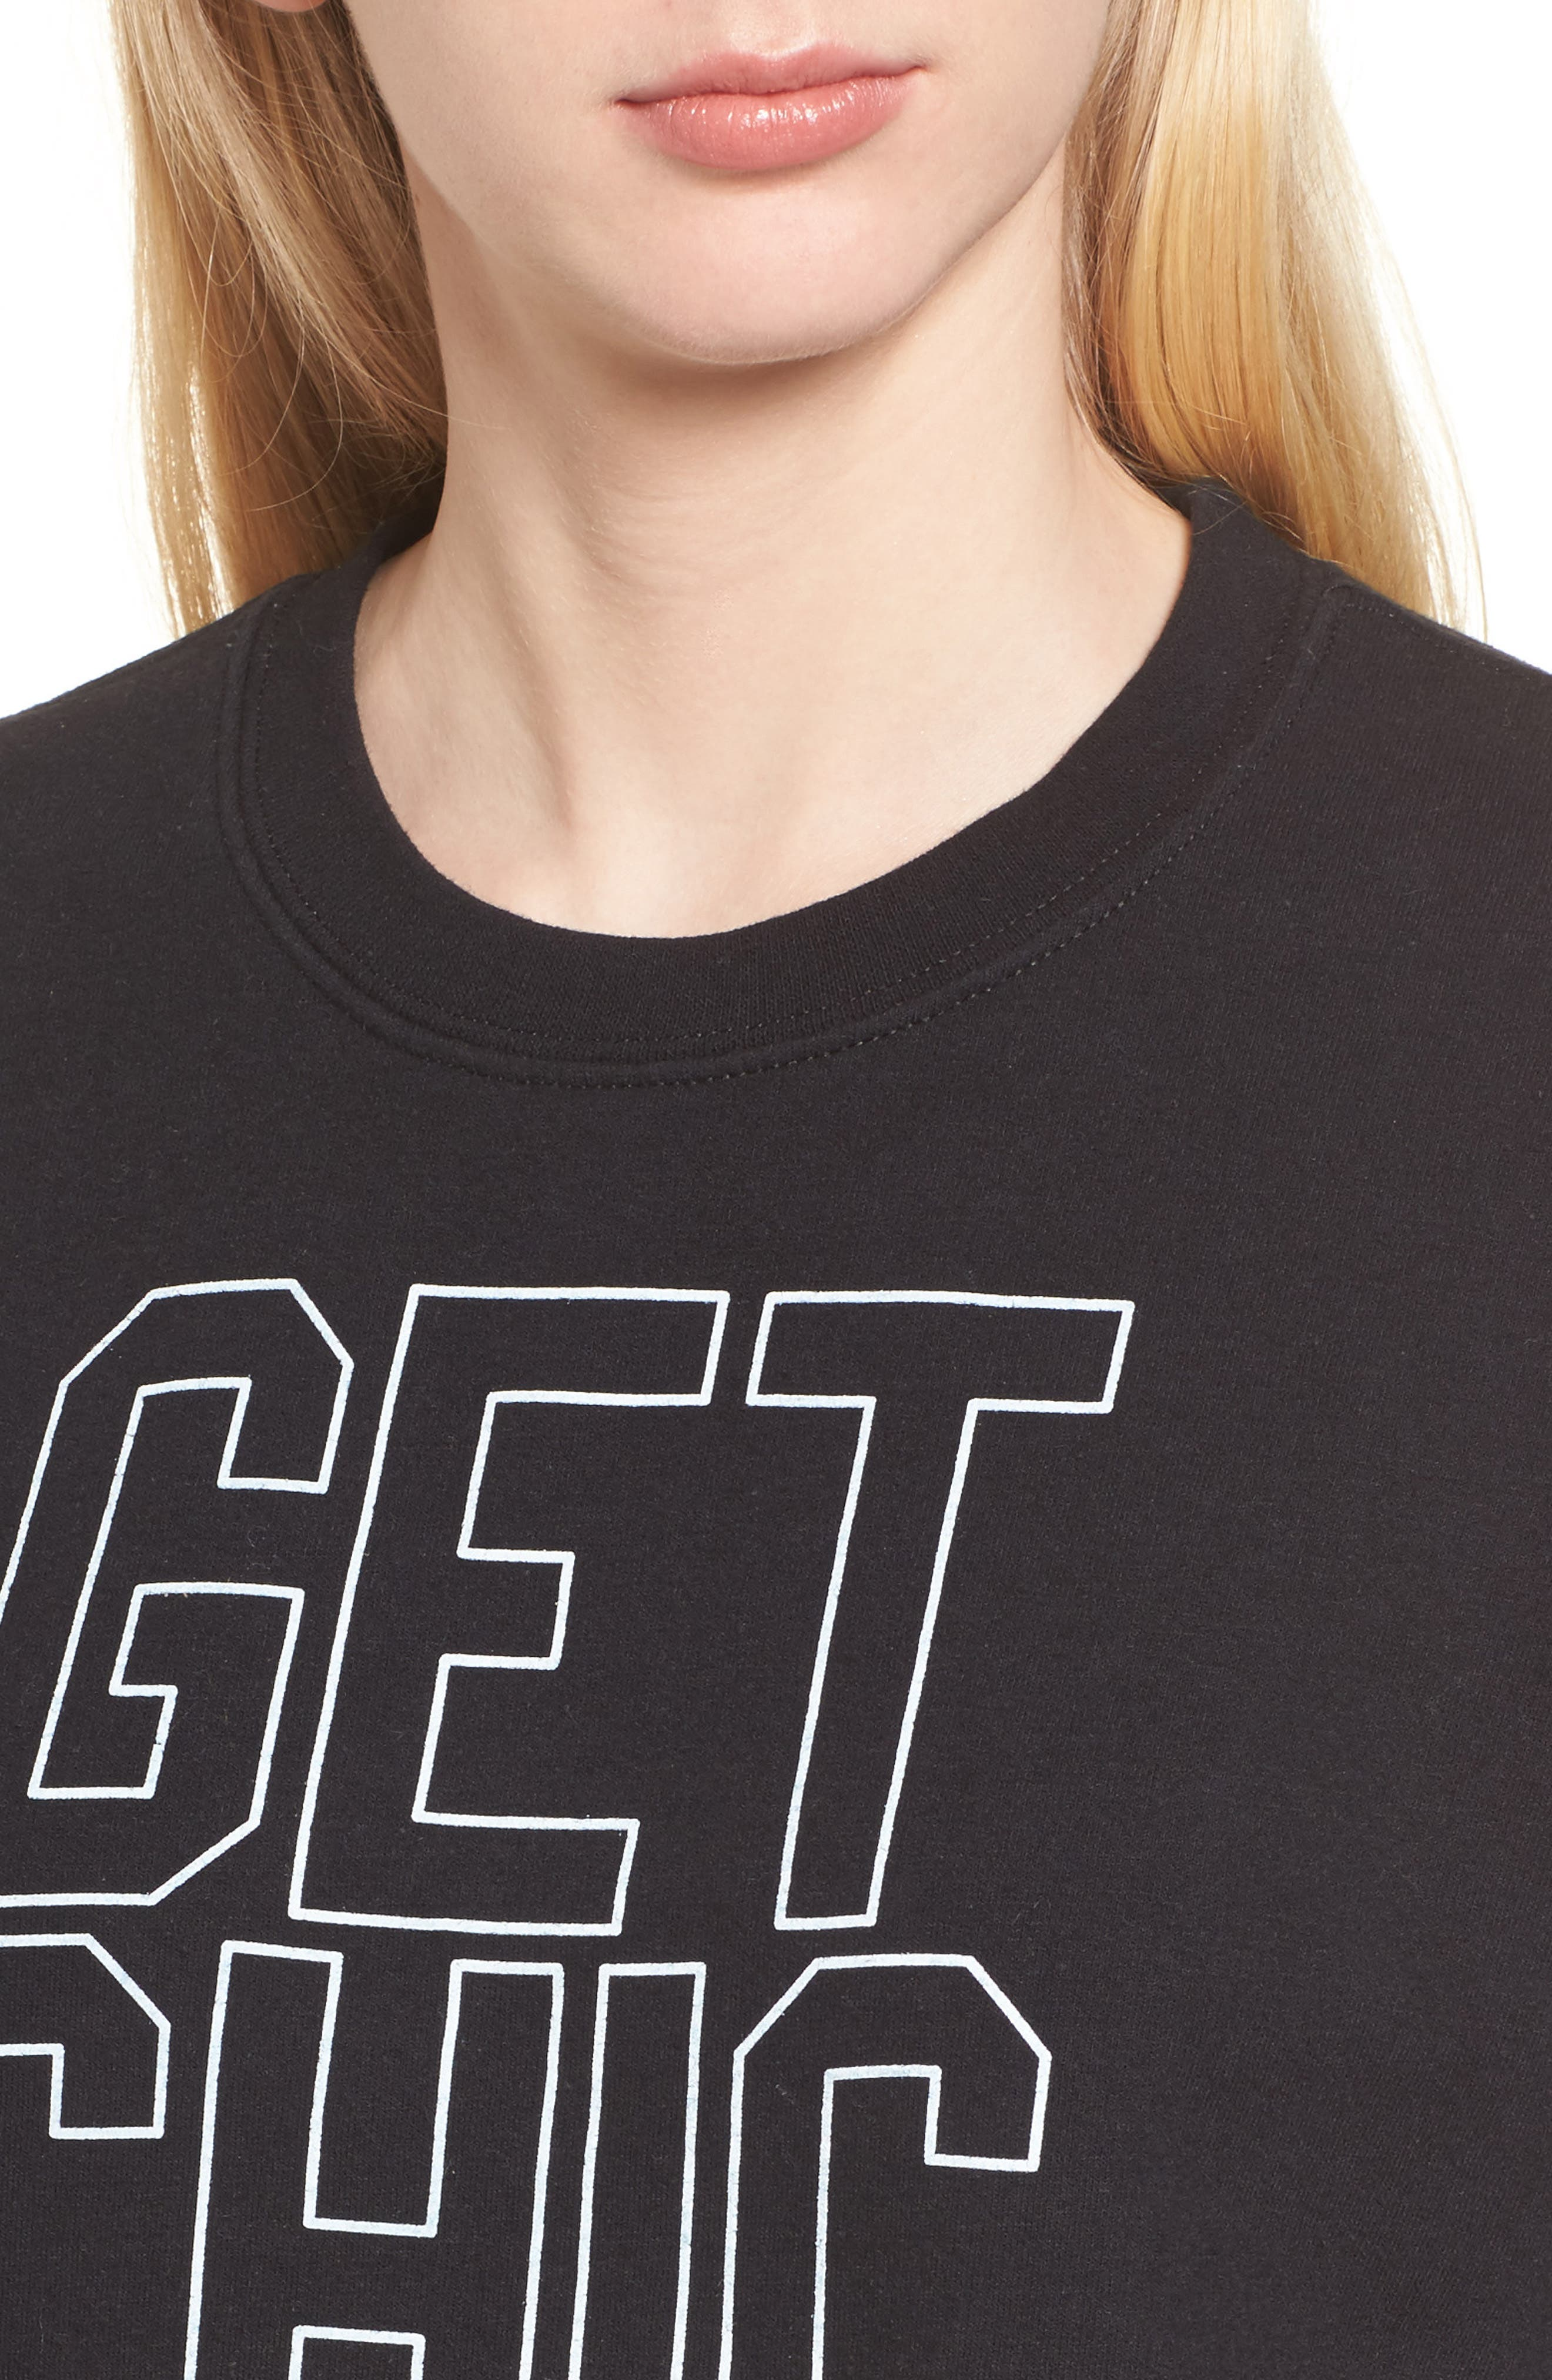 Get Chic Done Sweatshirt,                             Alternate thumbnail 4, color,                             Black